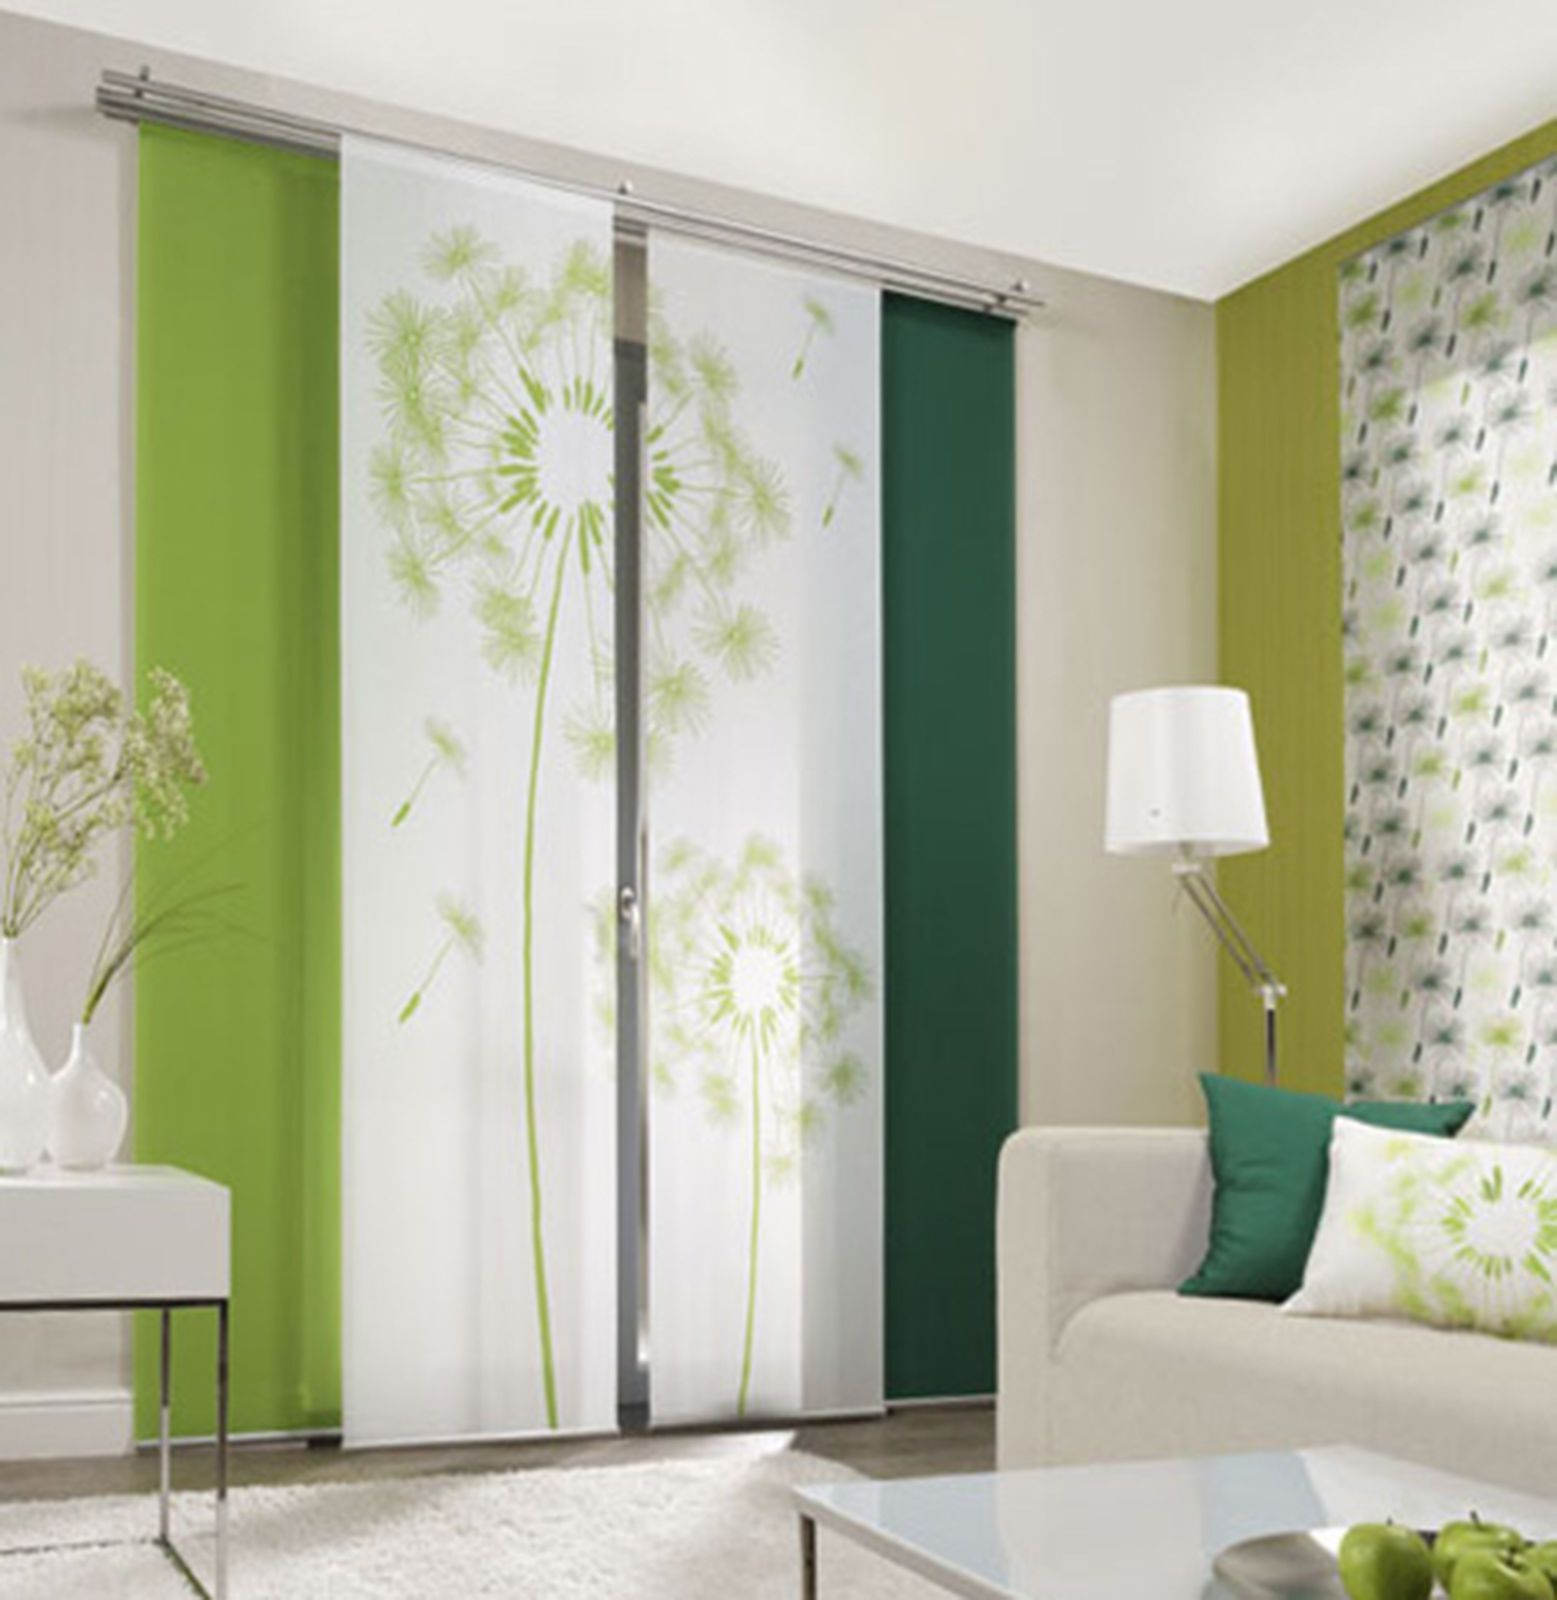 Dandelion Allover 1 Sliding Curtain Panels Room Dividers Panel